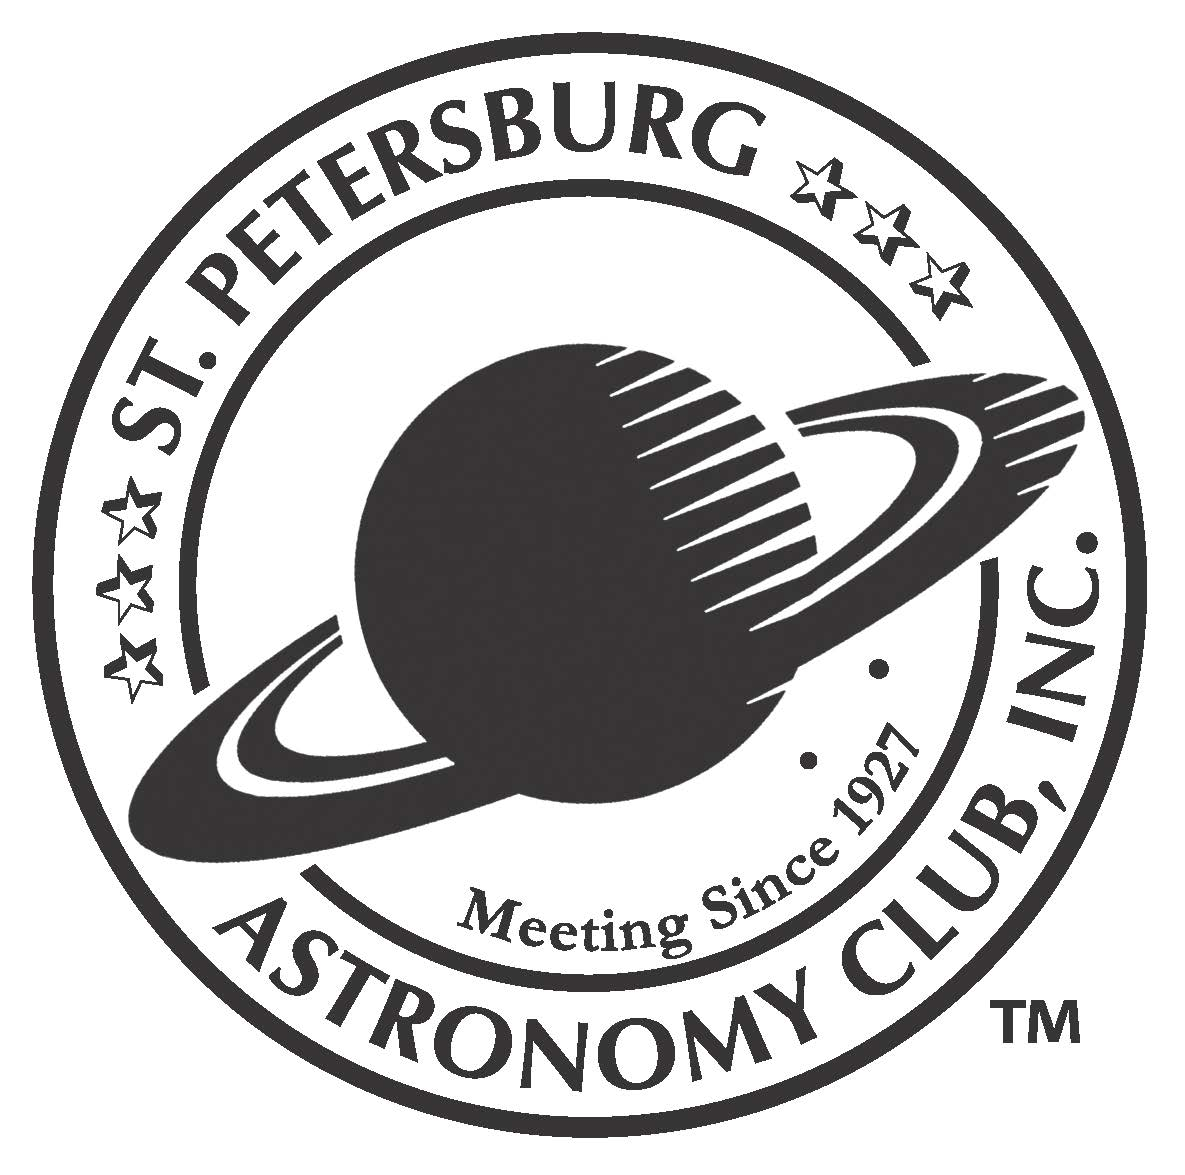 St. Petersburg Astronomy Club Logo